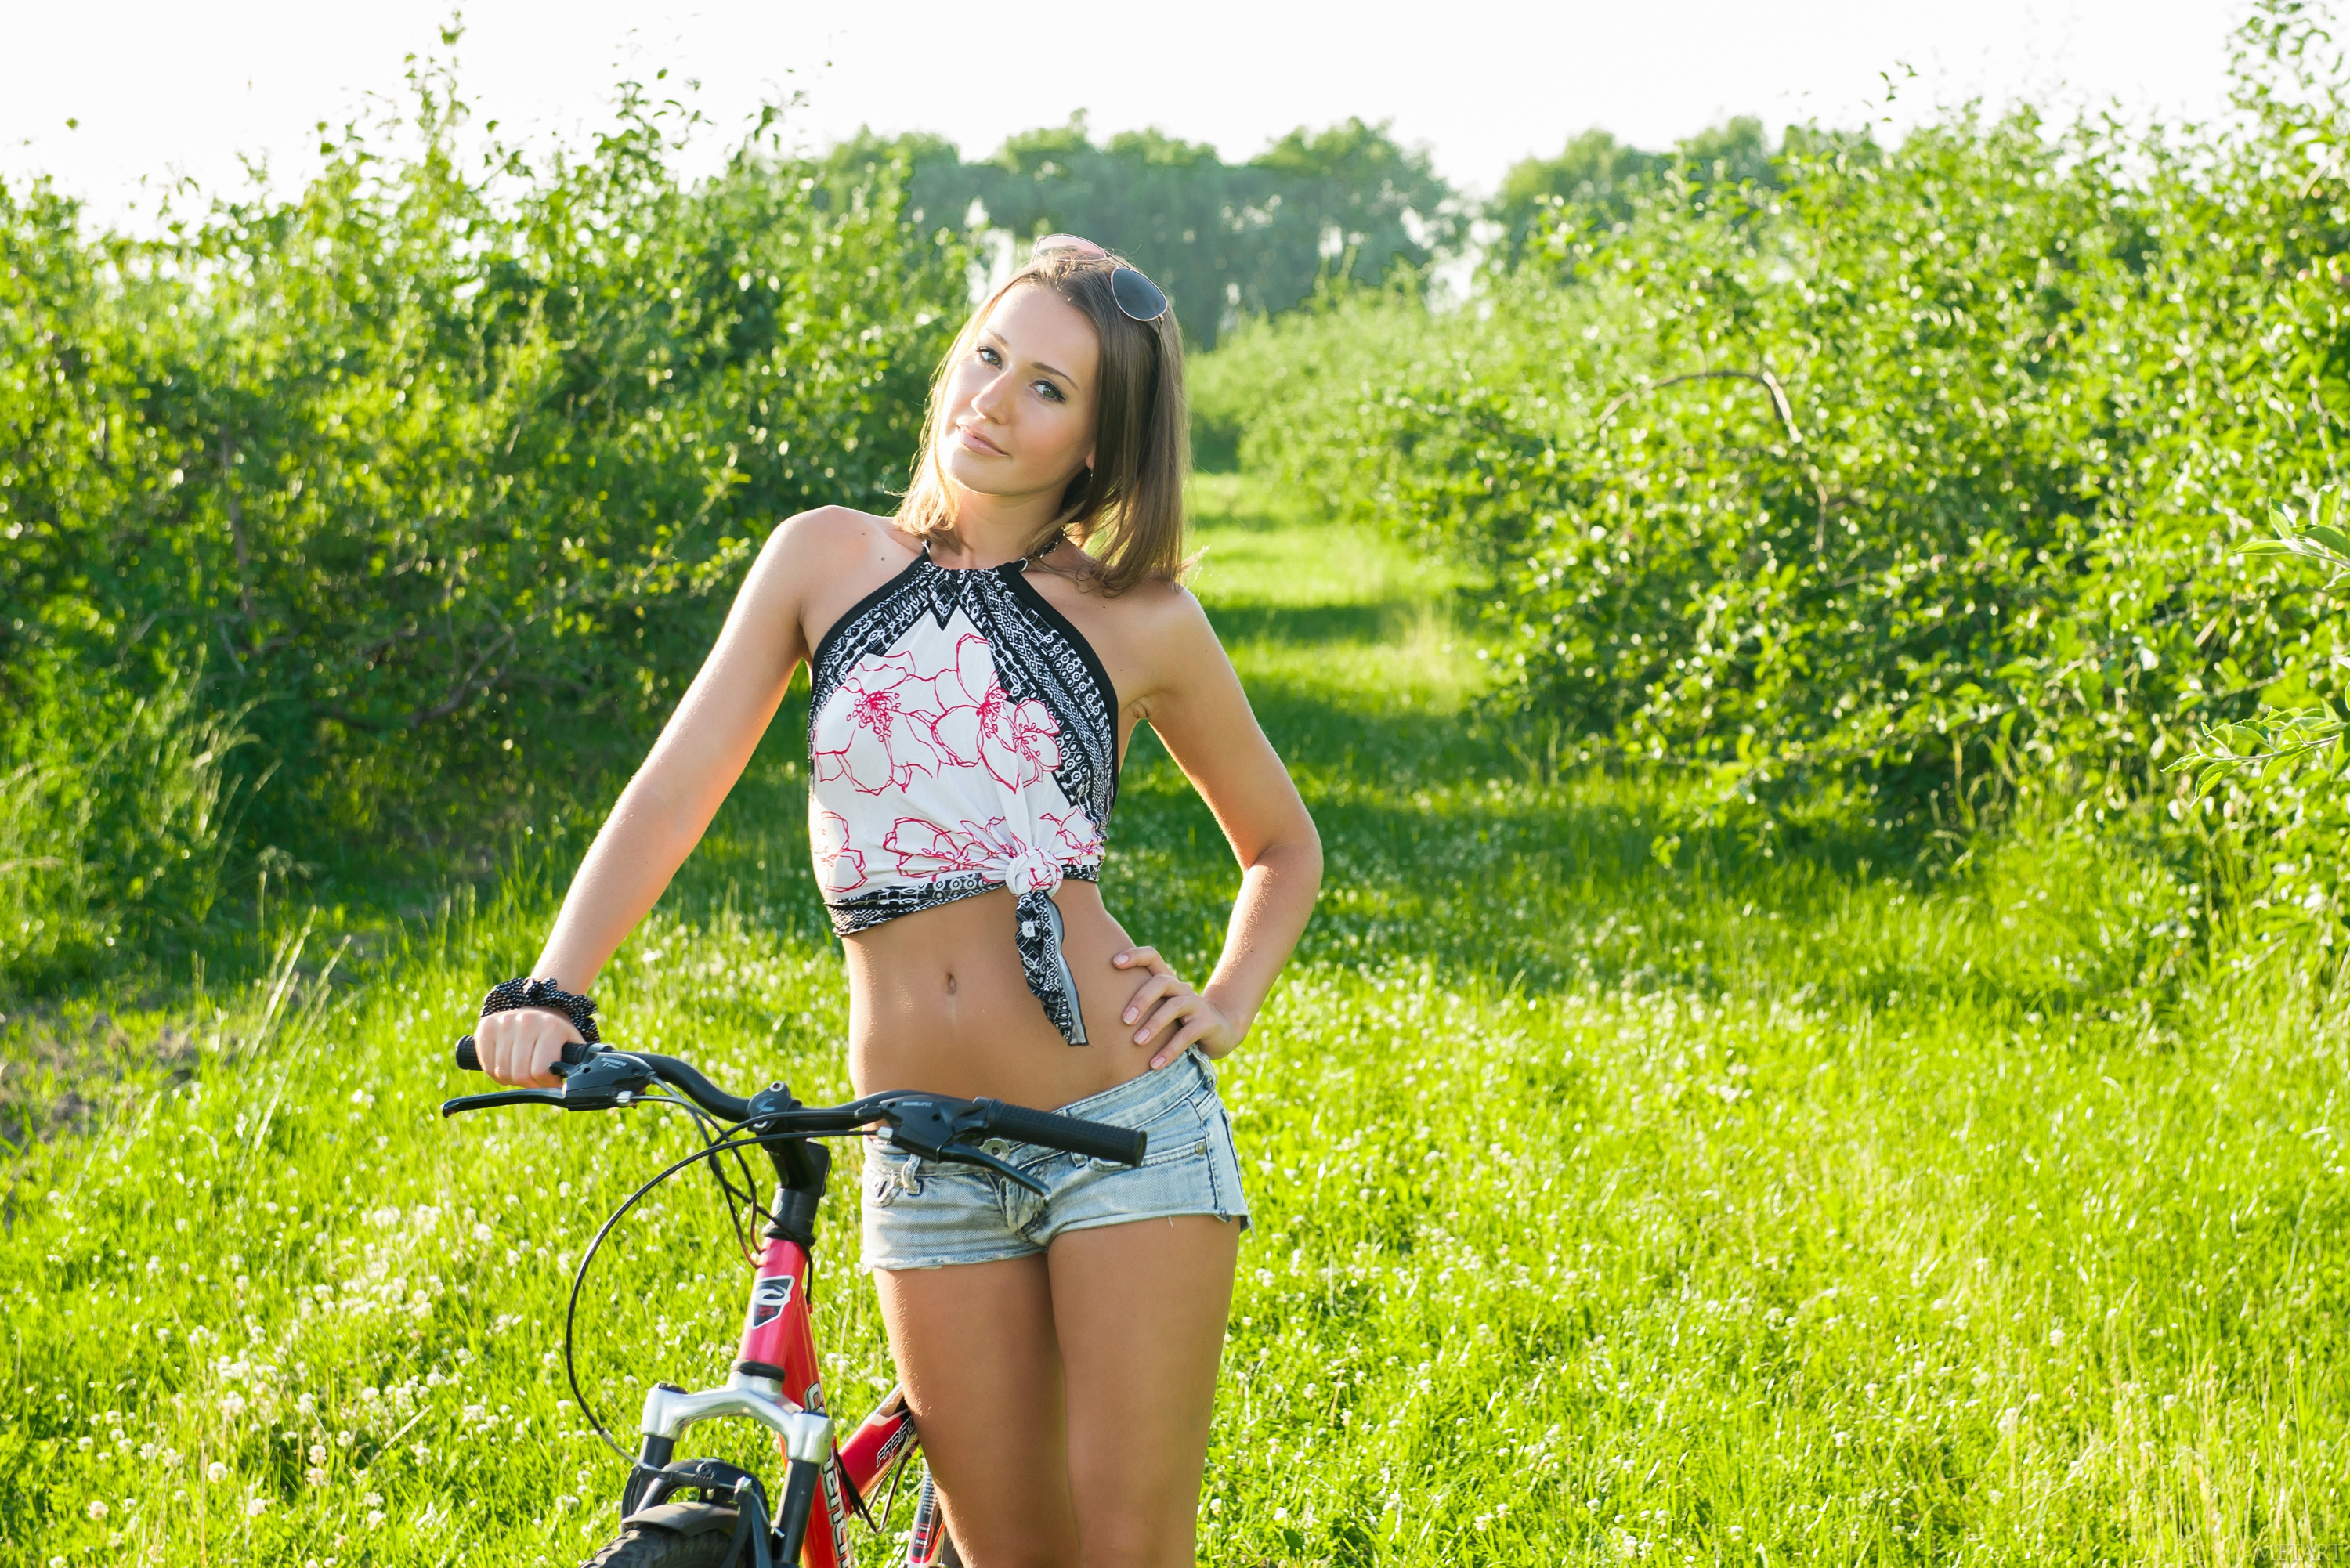 bike-girlz-wallpapers